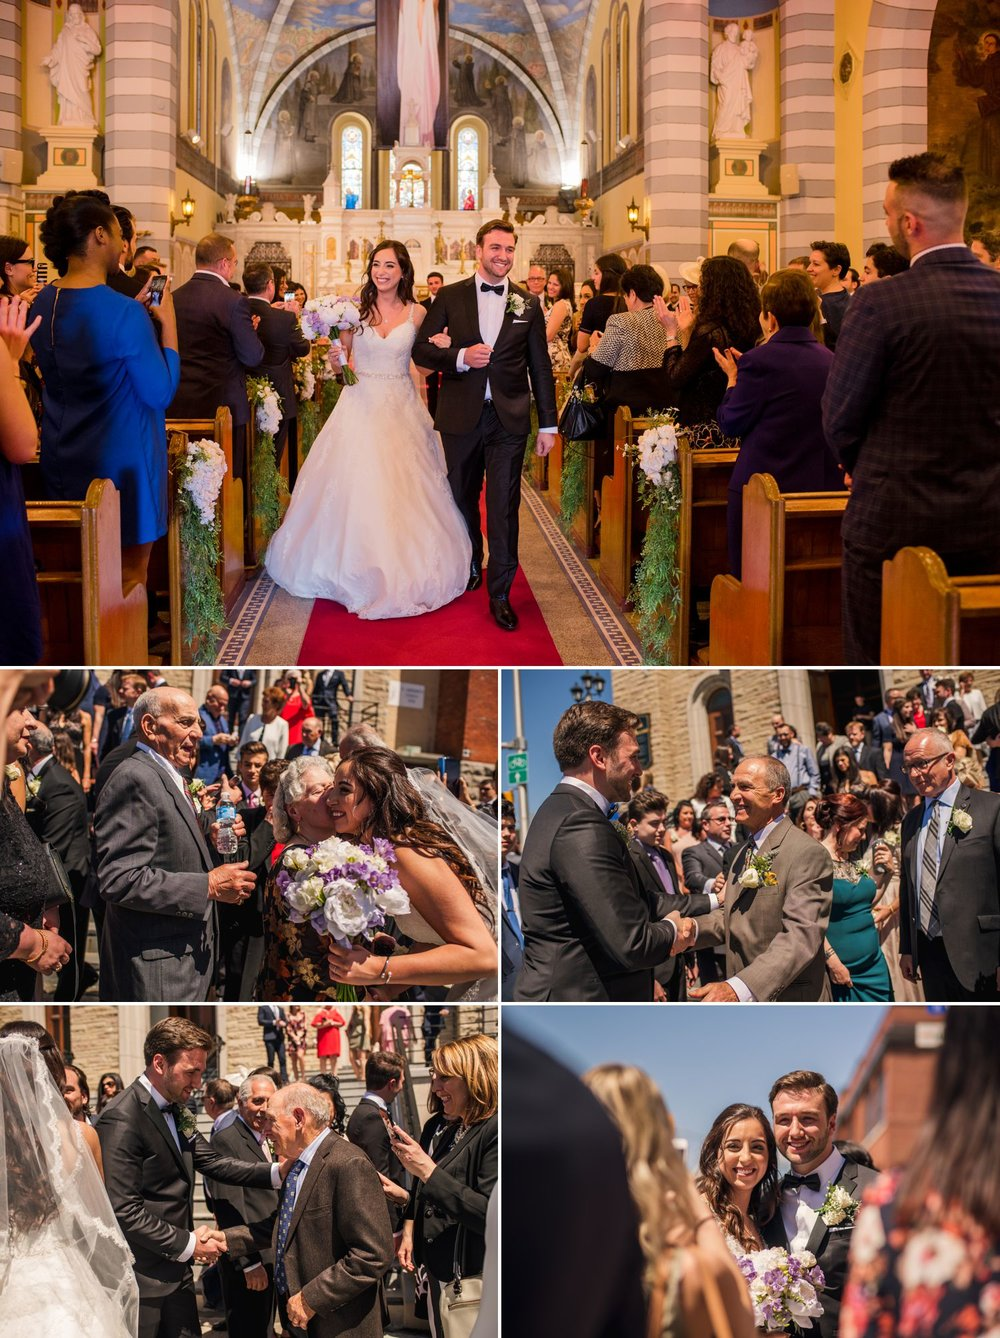 A wedding ceremony at St.Anthonys church in Little Italy in Ottawa, ON